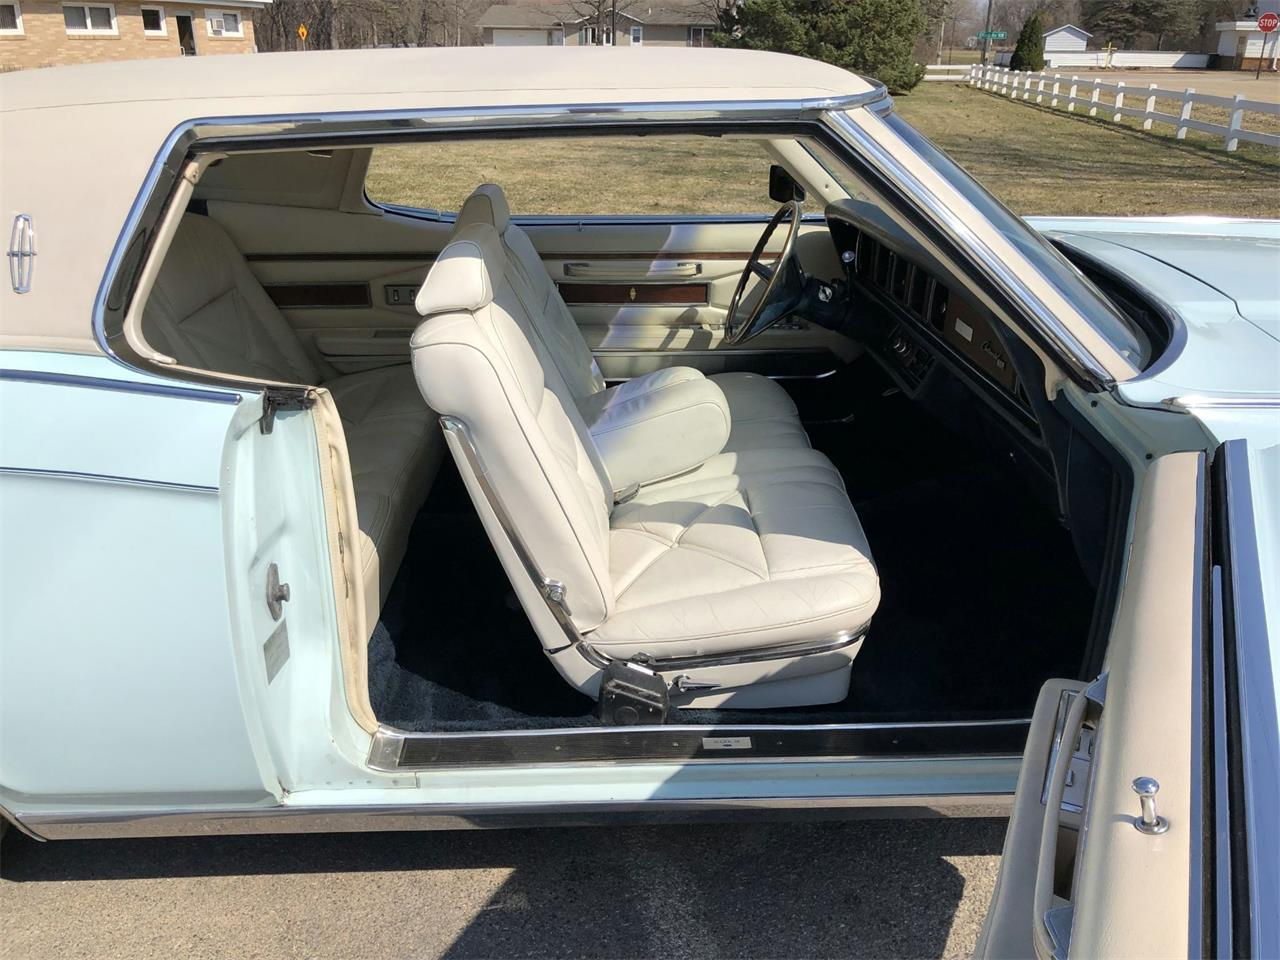 1971 Lincoln Continental Mark III (CC-1337097) for sale in Maple Lake, Minnesota